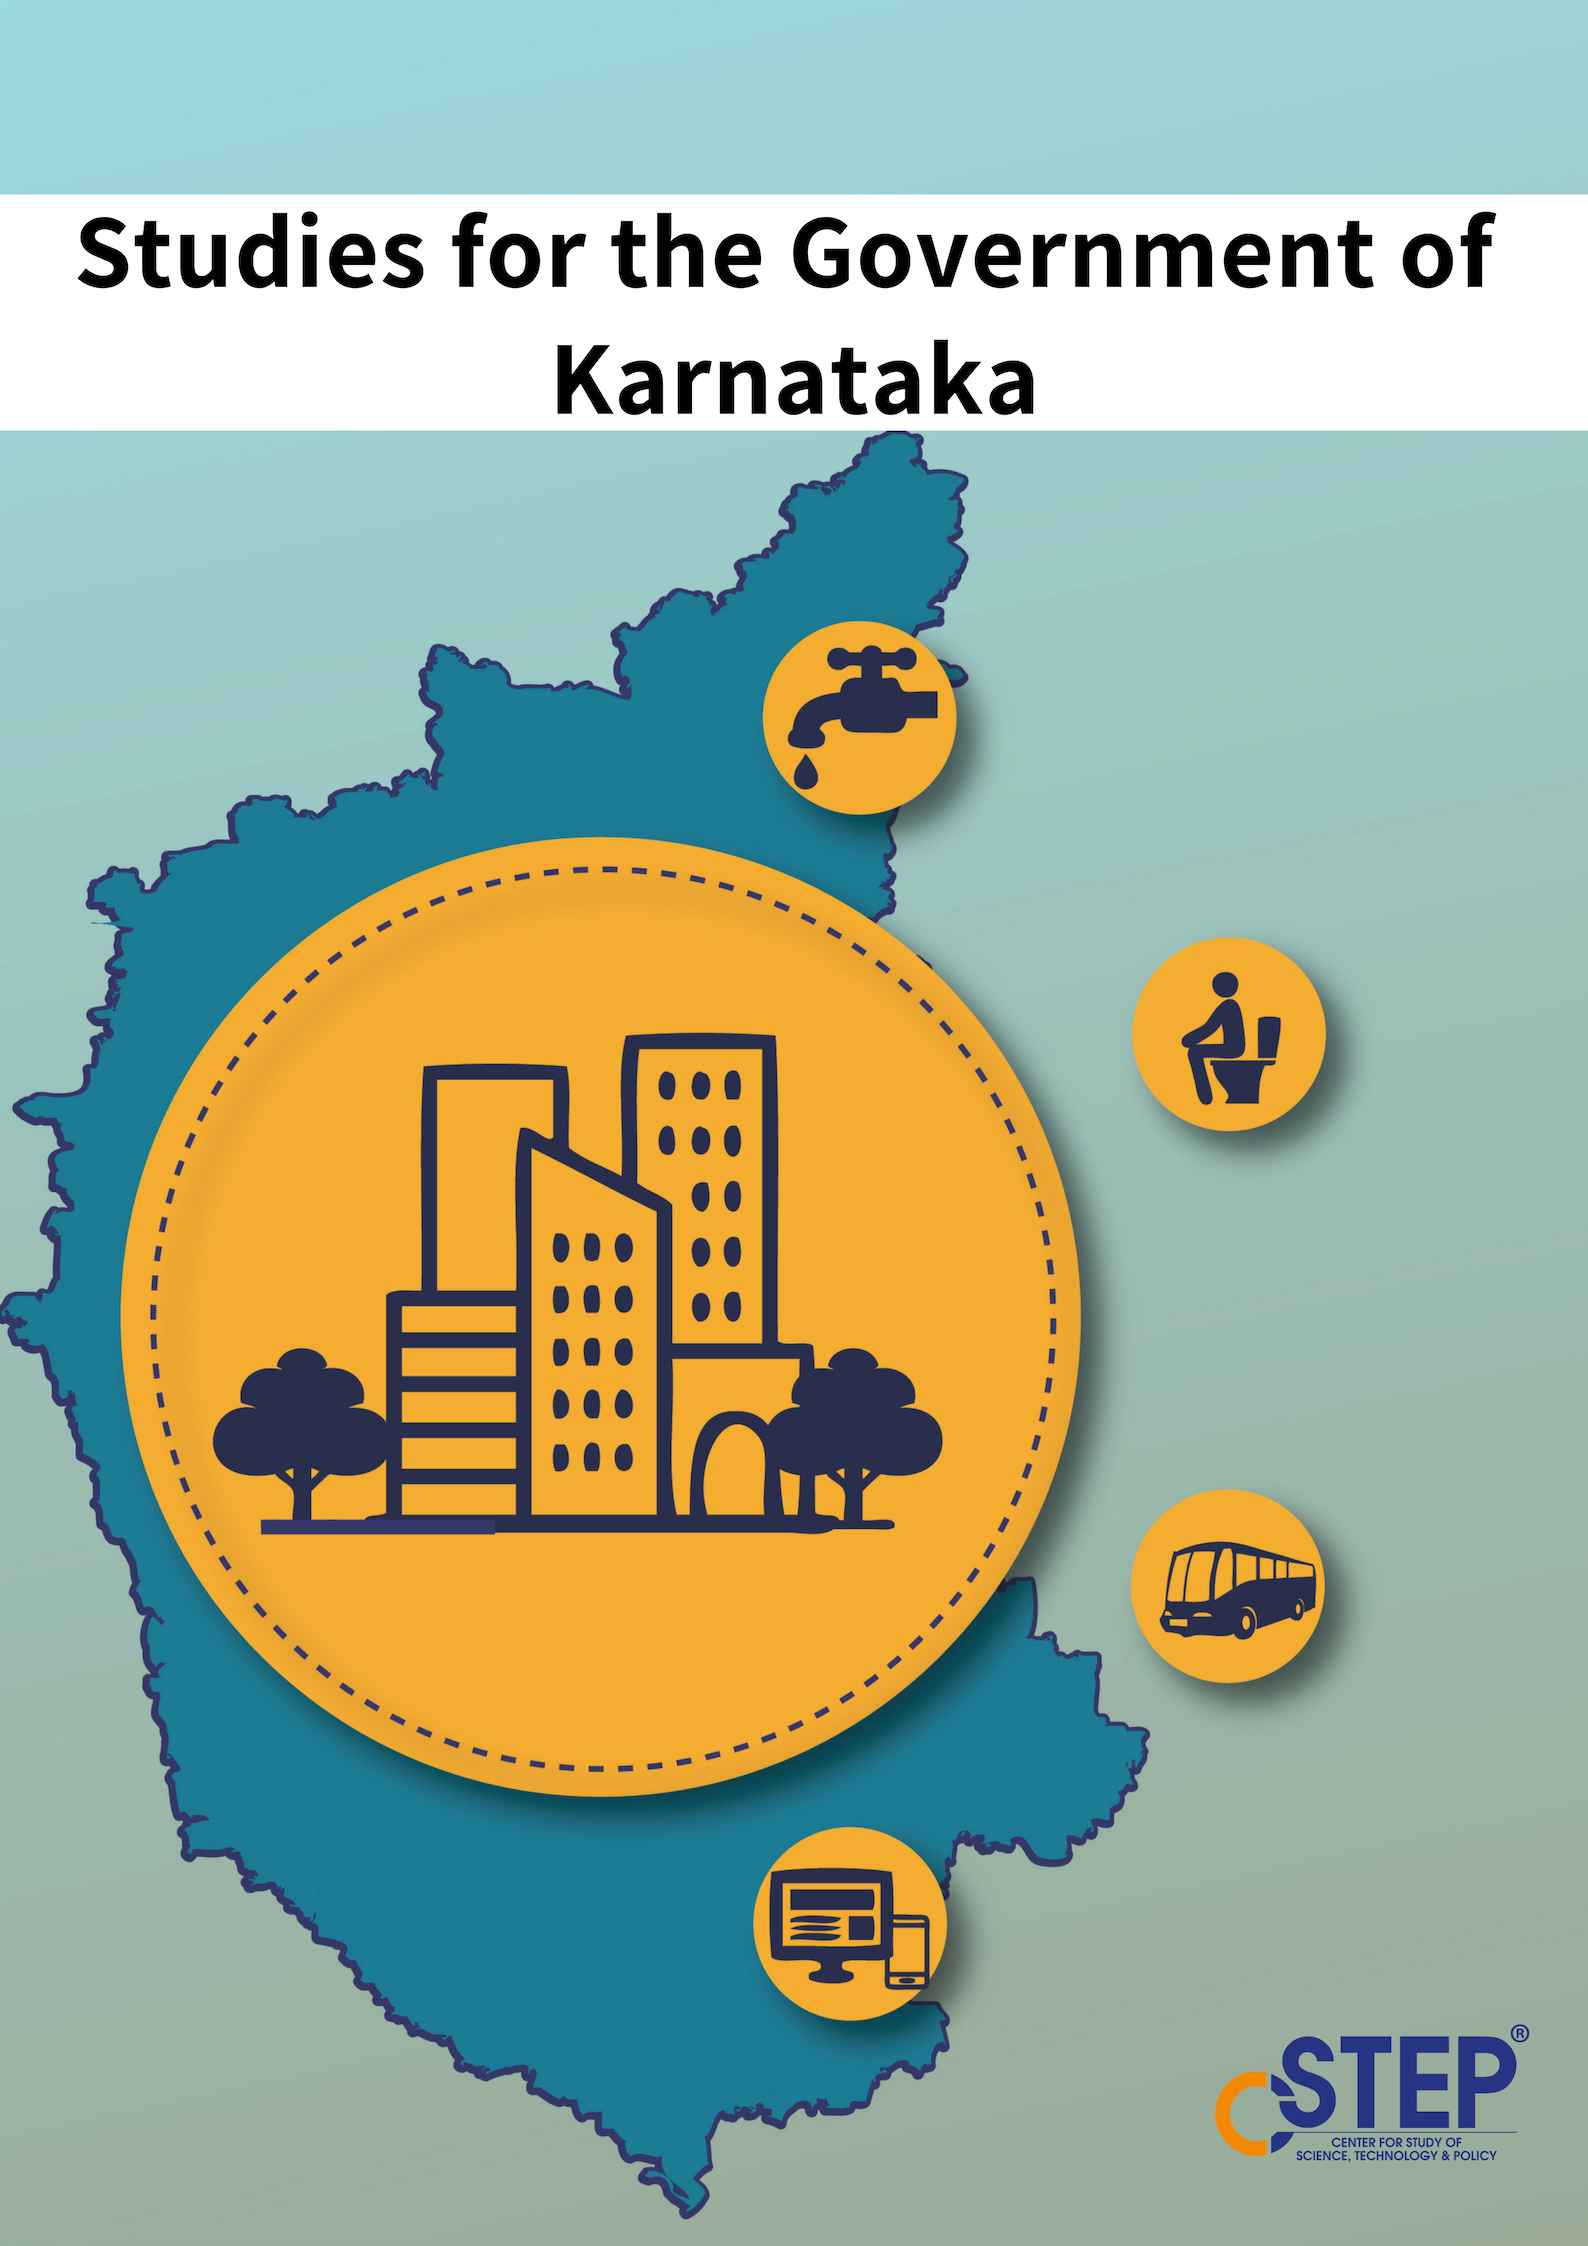 Studies for the Government of Karnataka